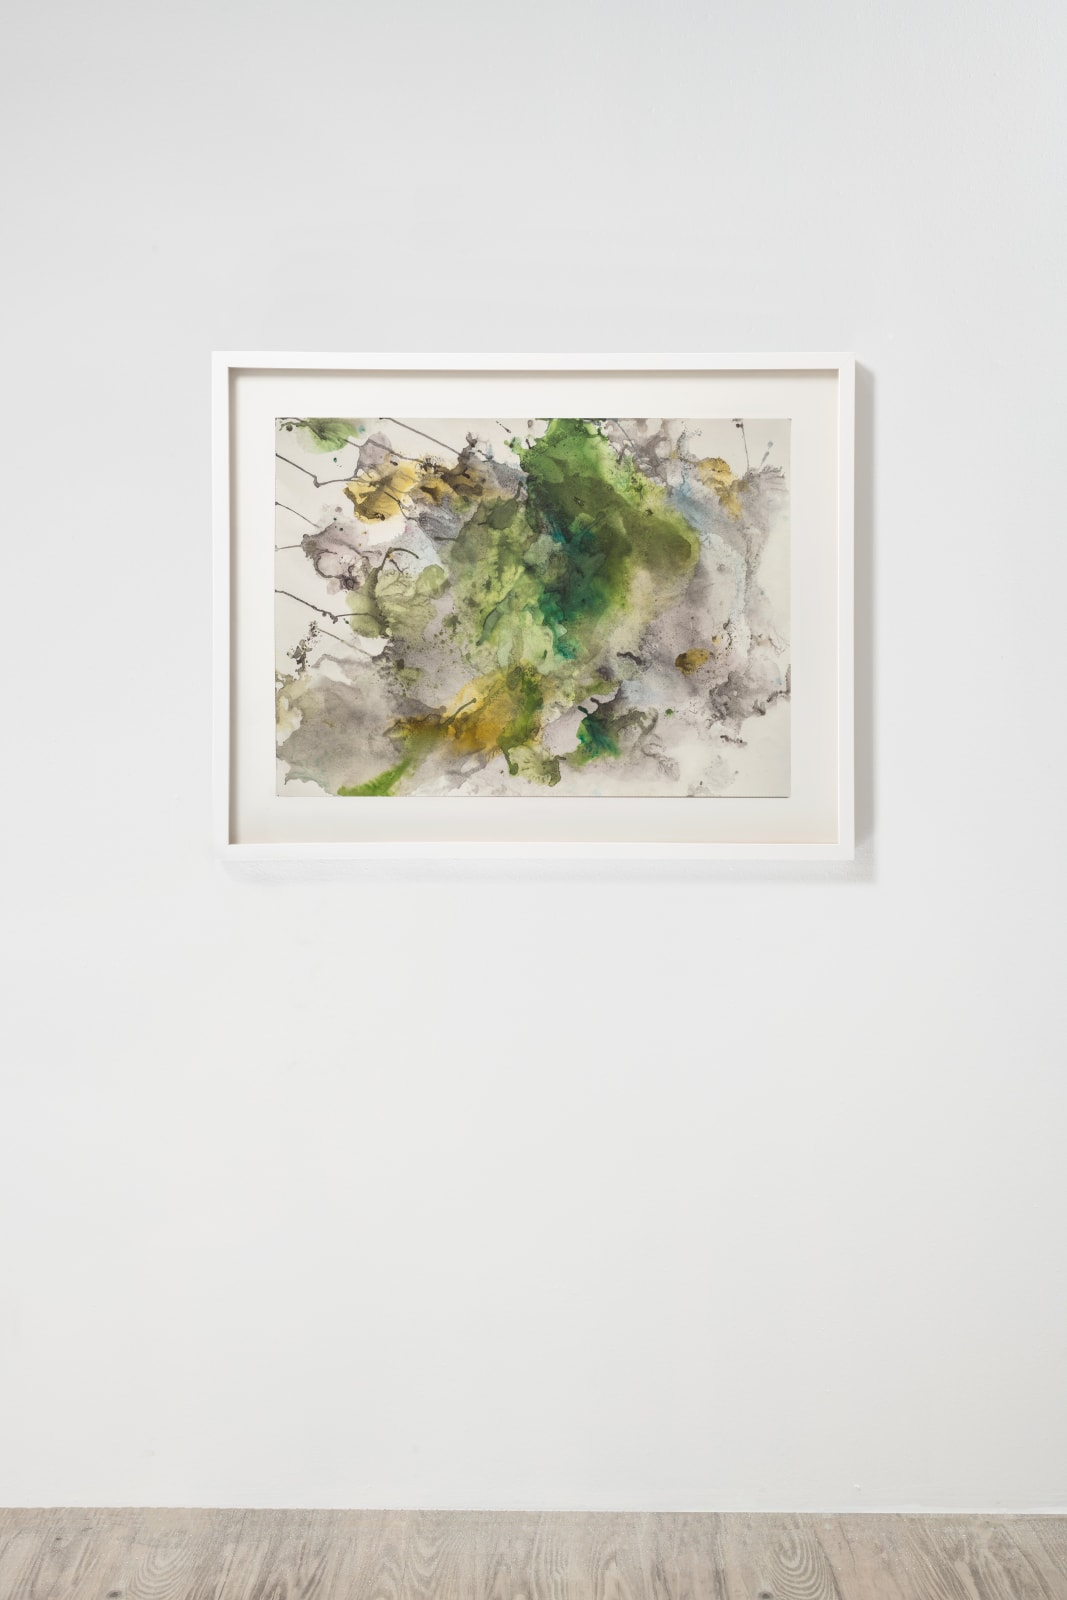 Michele Colburn Holding Steady, 2020 Gunpowder and watercolors on Fabriano paper 55.9 x 76.2 cm, 22 x 30 in. (Frame not included) Photo: Lee Stalsworth